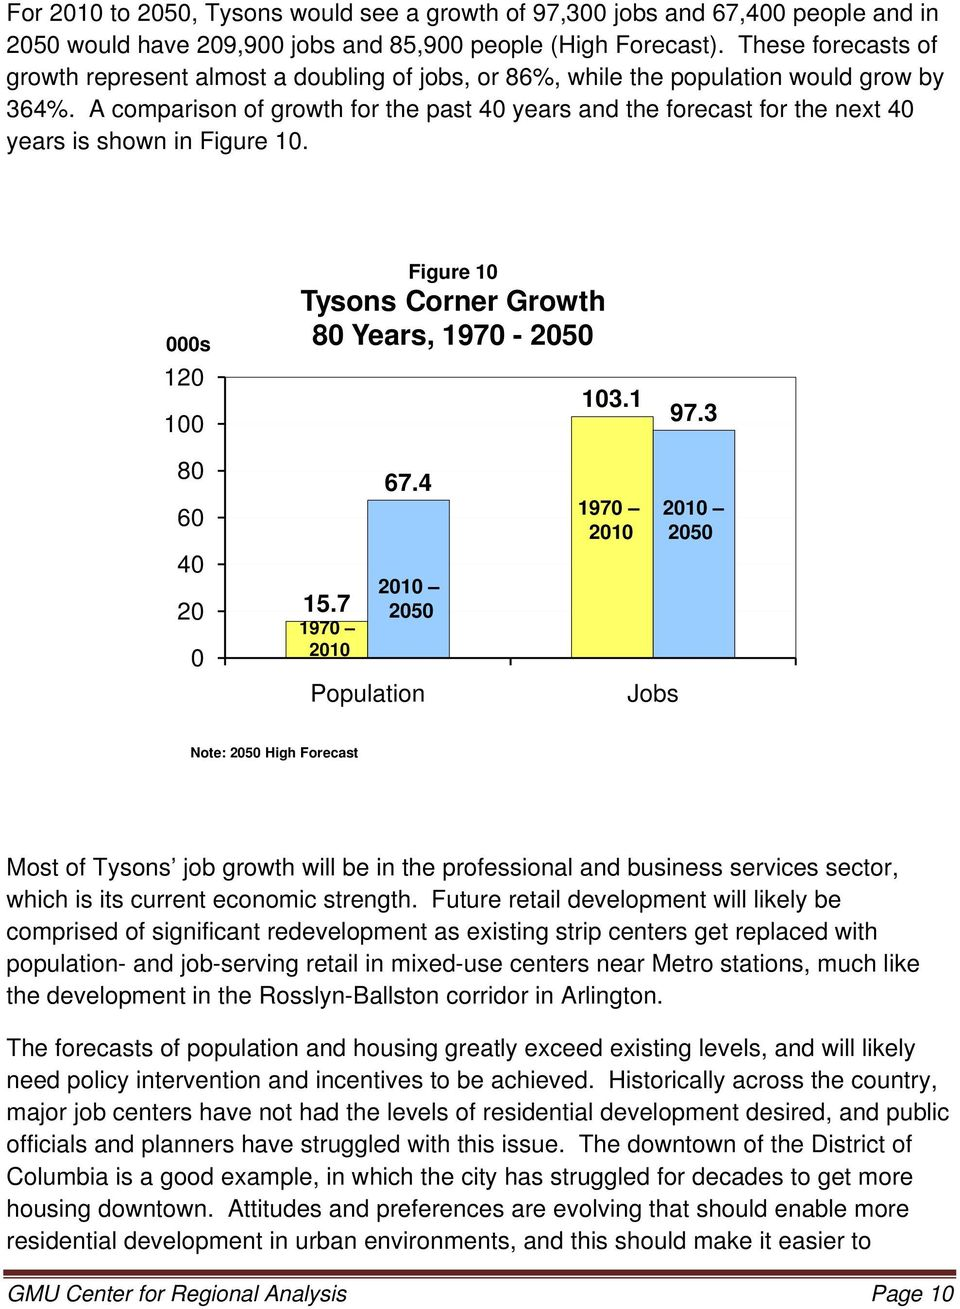 A comparison of growth for the past 40 years and the forecast for the next 40 years is shown in Figure 10. 000s 120 100 Figure 10 Tysons Corner Growth 80 Years, 1970-2050 103.1 97.3 80 60 40 20 0 15.